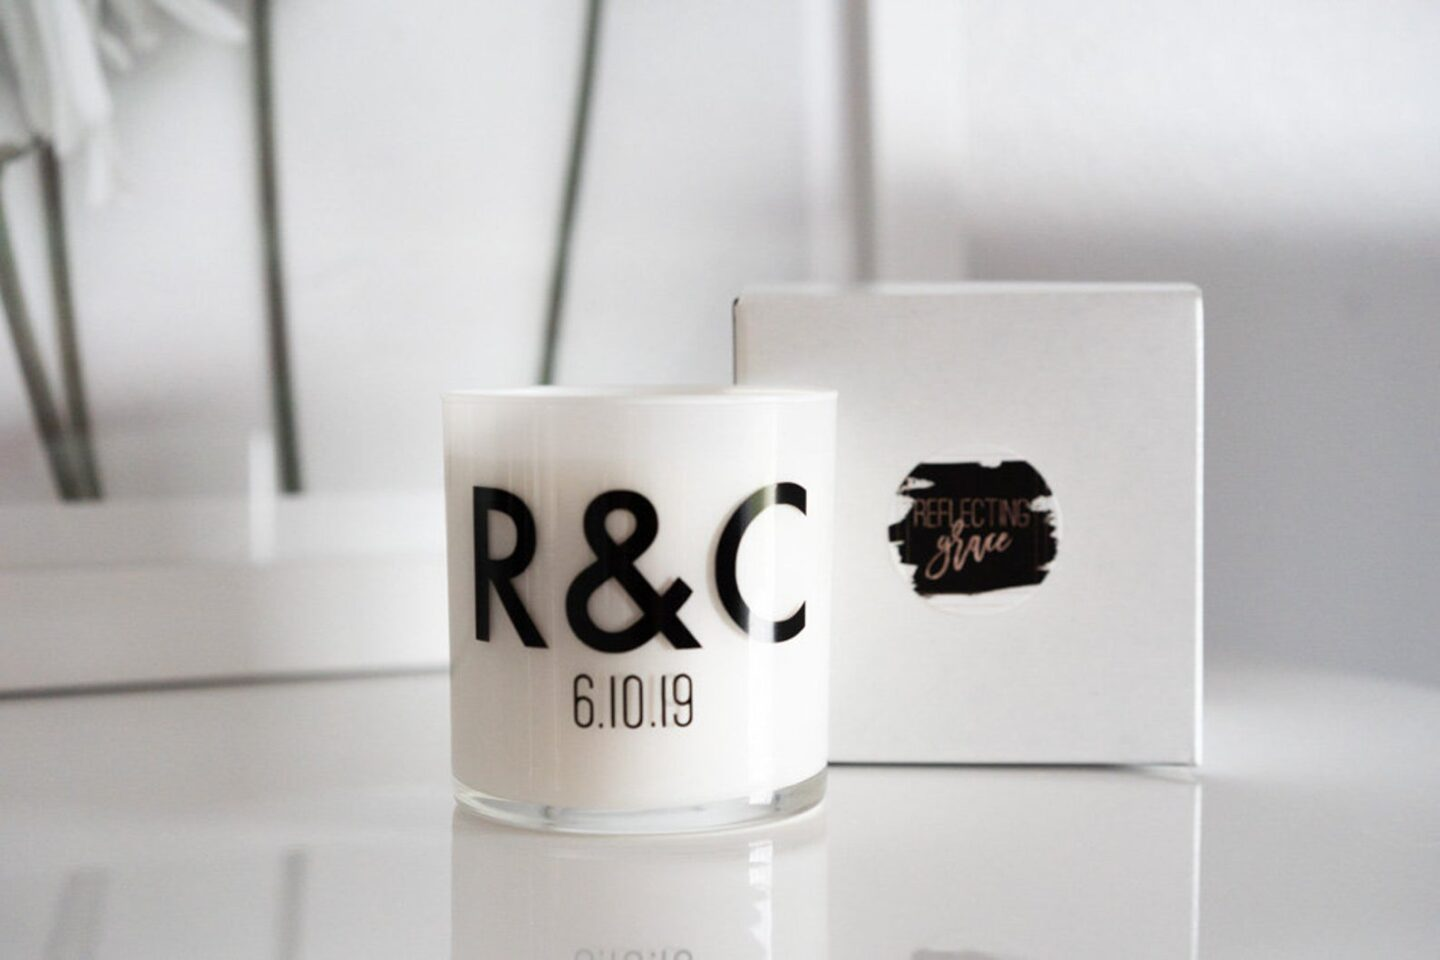 Modern block letters monogram on a candle that says R&C in black against a white glass candle.